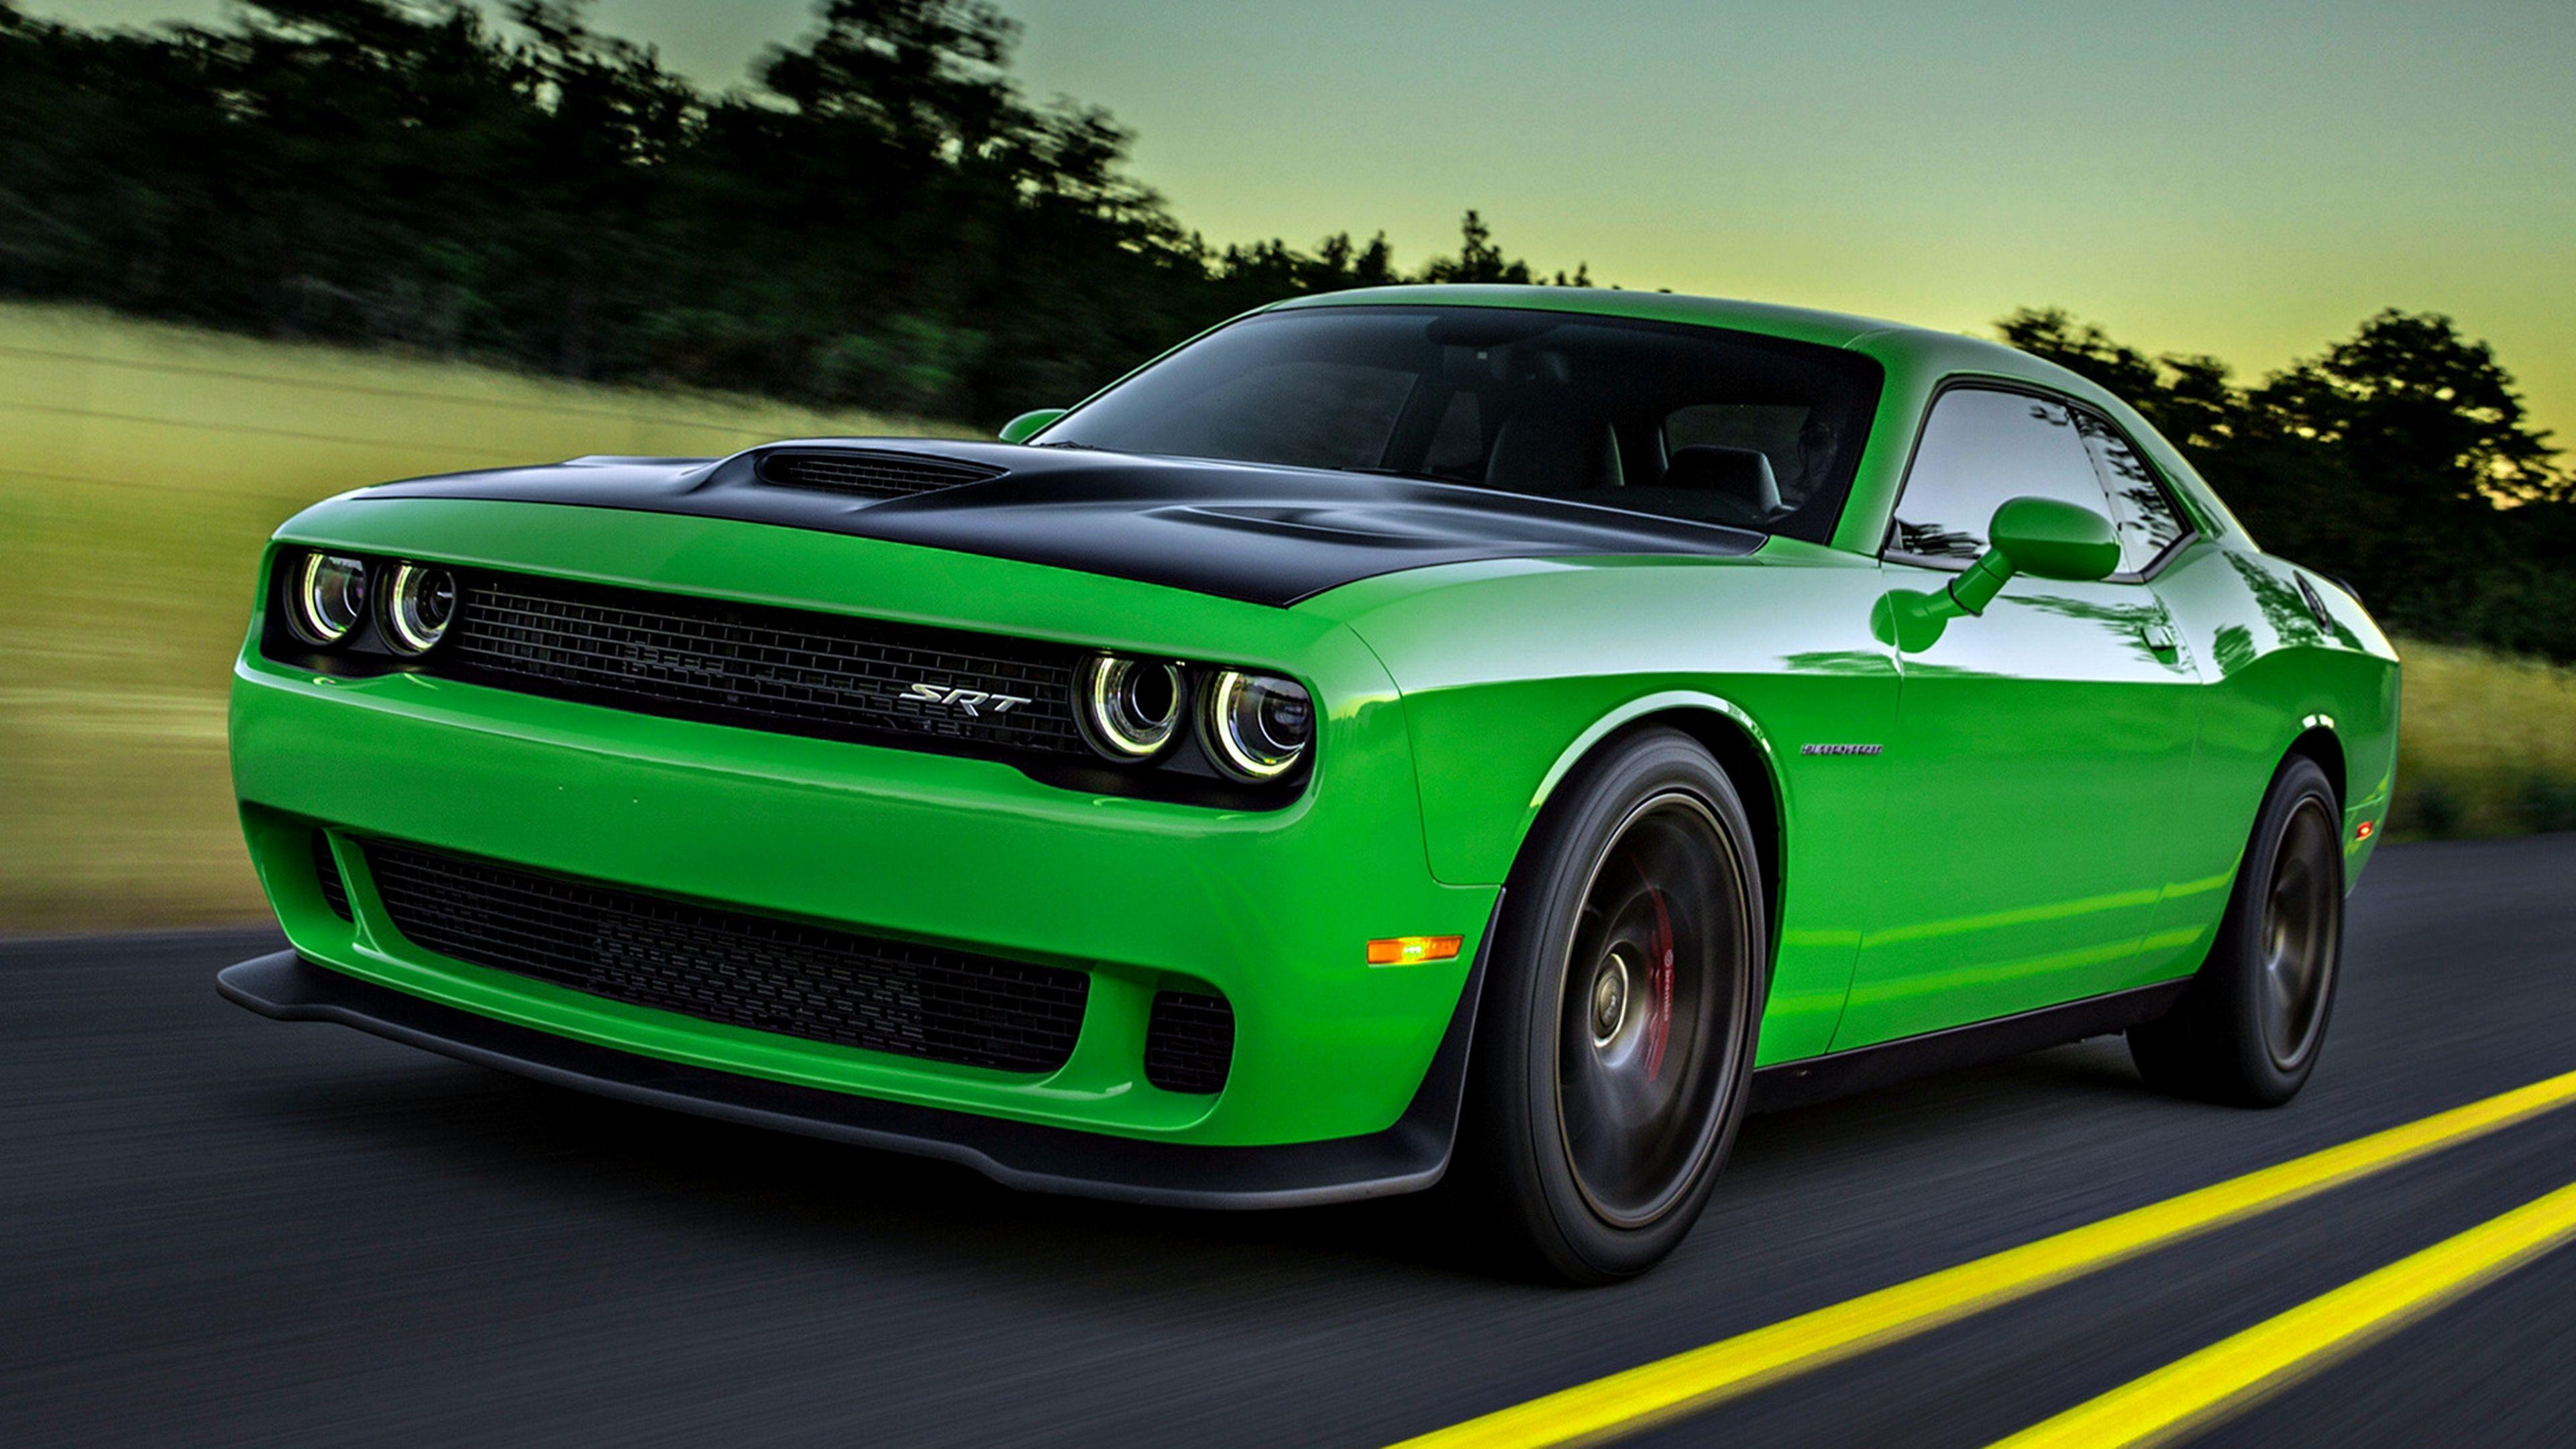 There's no arguing that the dodge challenger srt hellcat is one of t. Dodge Challenger Srt Hellcat Wallpapers Wallpaper Cave